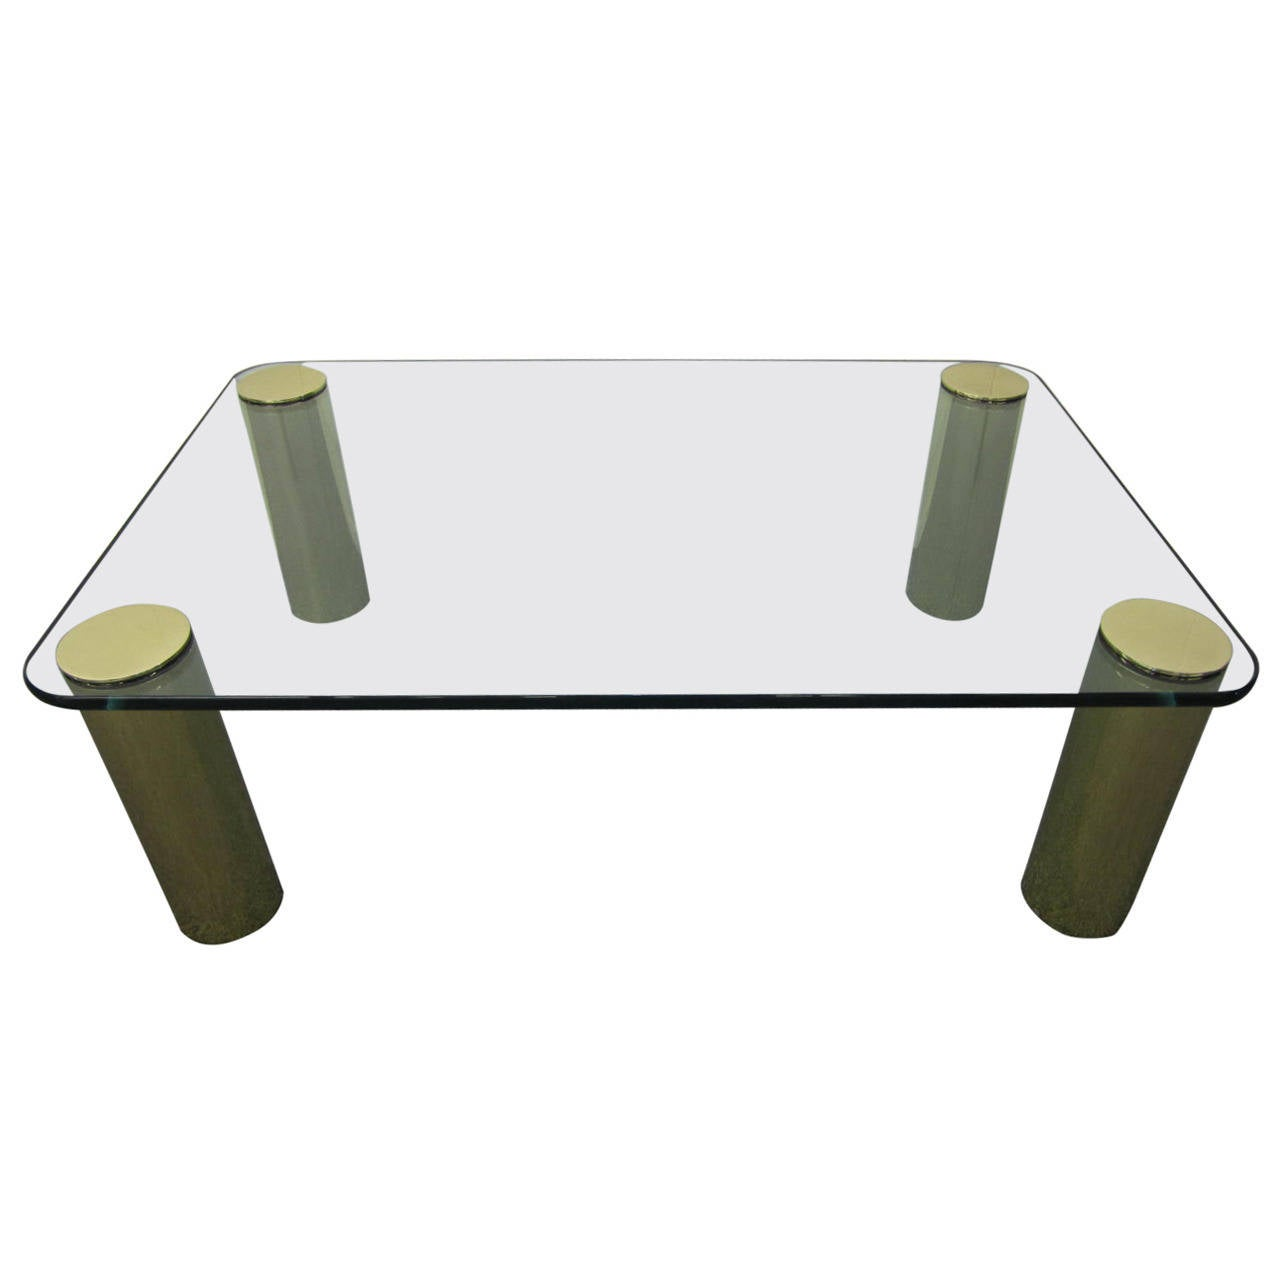 Fabulous Pace Collection Brass and Glass Coffee Table, Mid-Century Modern 1